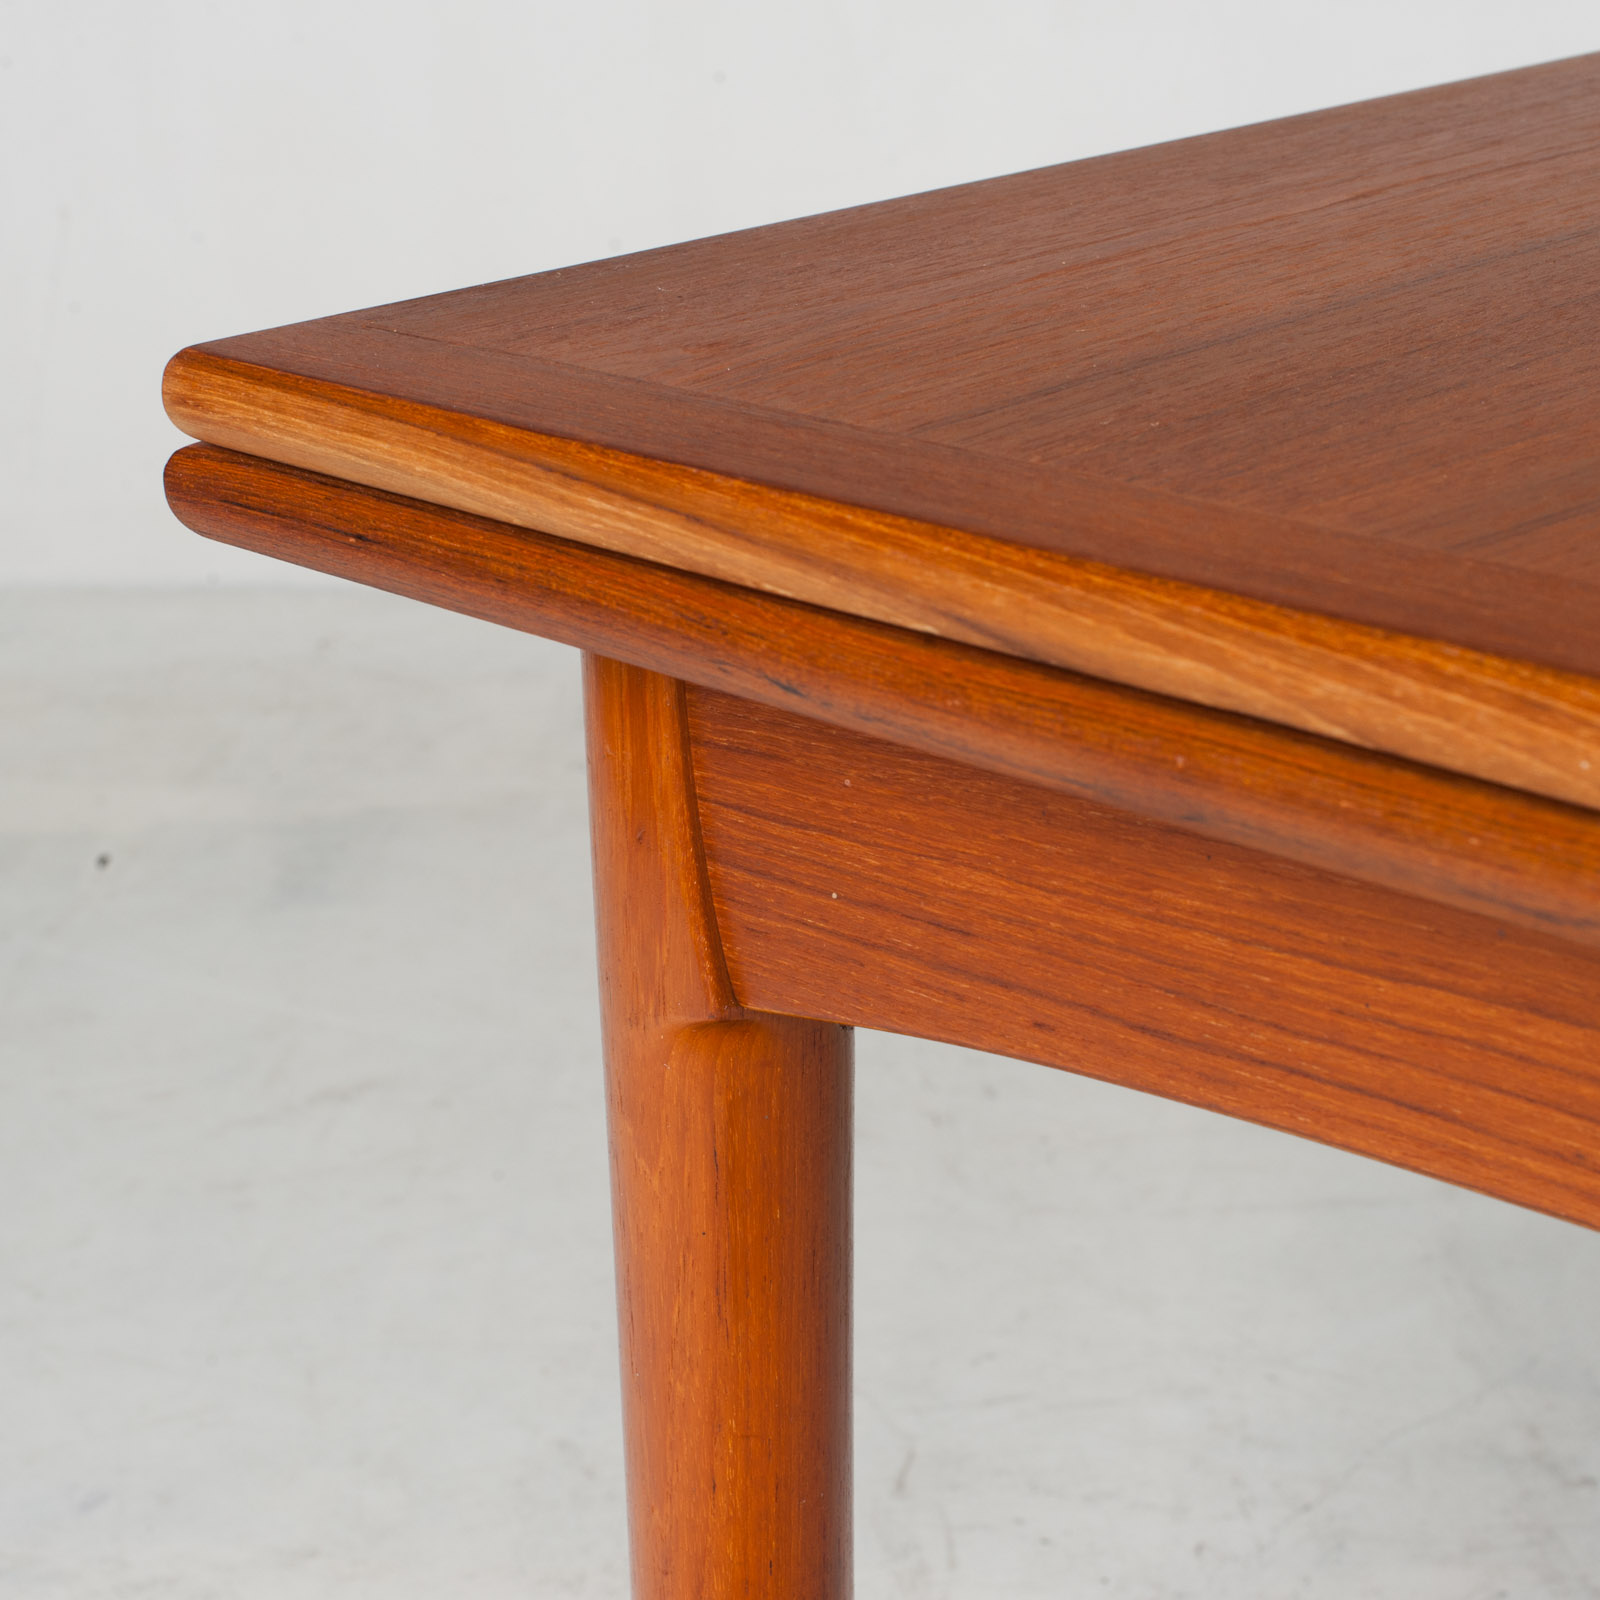 Rectangular Dining Table In Teak With Concealed Extentions 1960s Denmark9